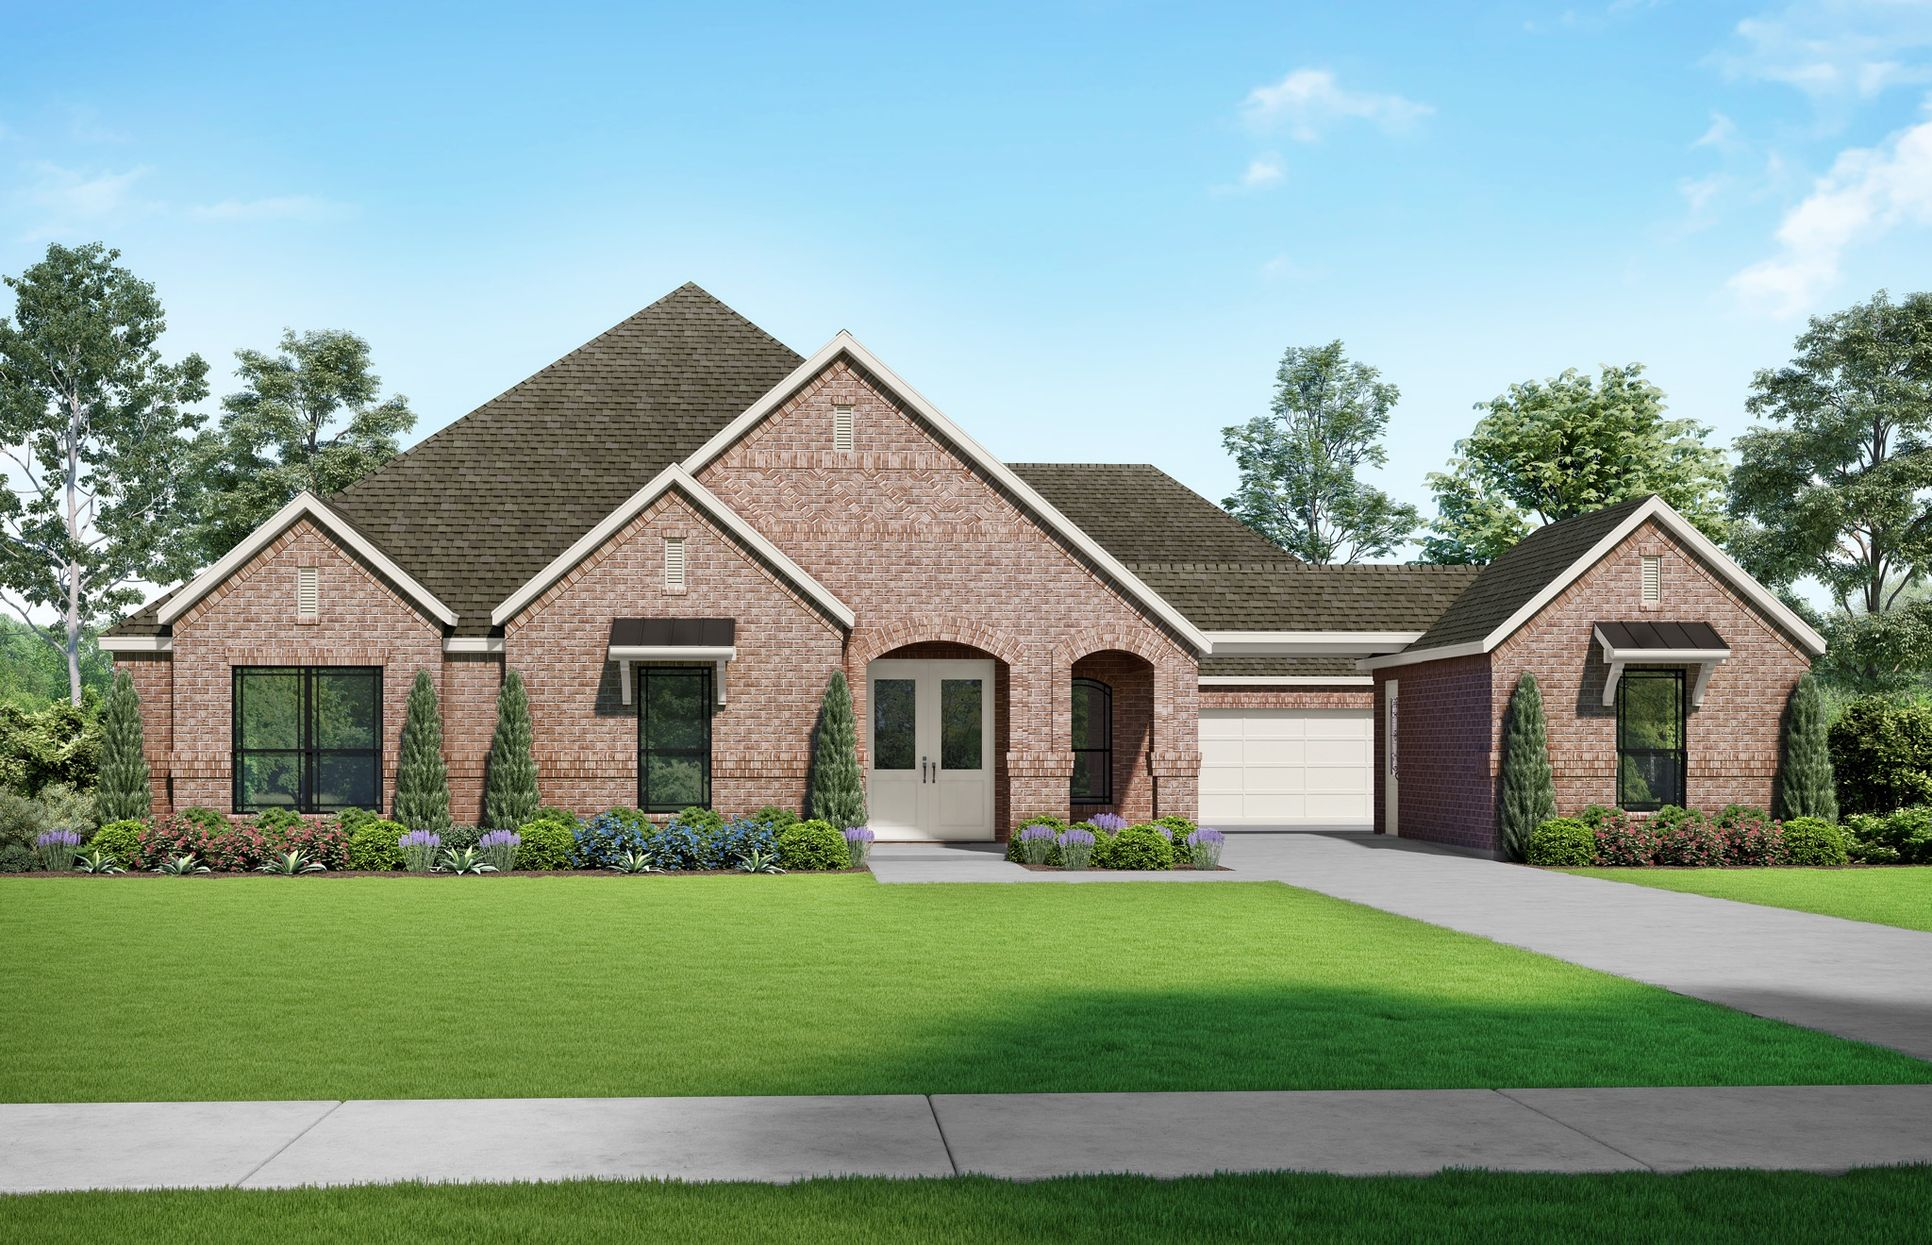 Courtman Elevation A. Images are artist renderings and will differ from the actual home built.:Courtman Elevation A